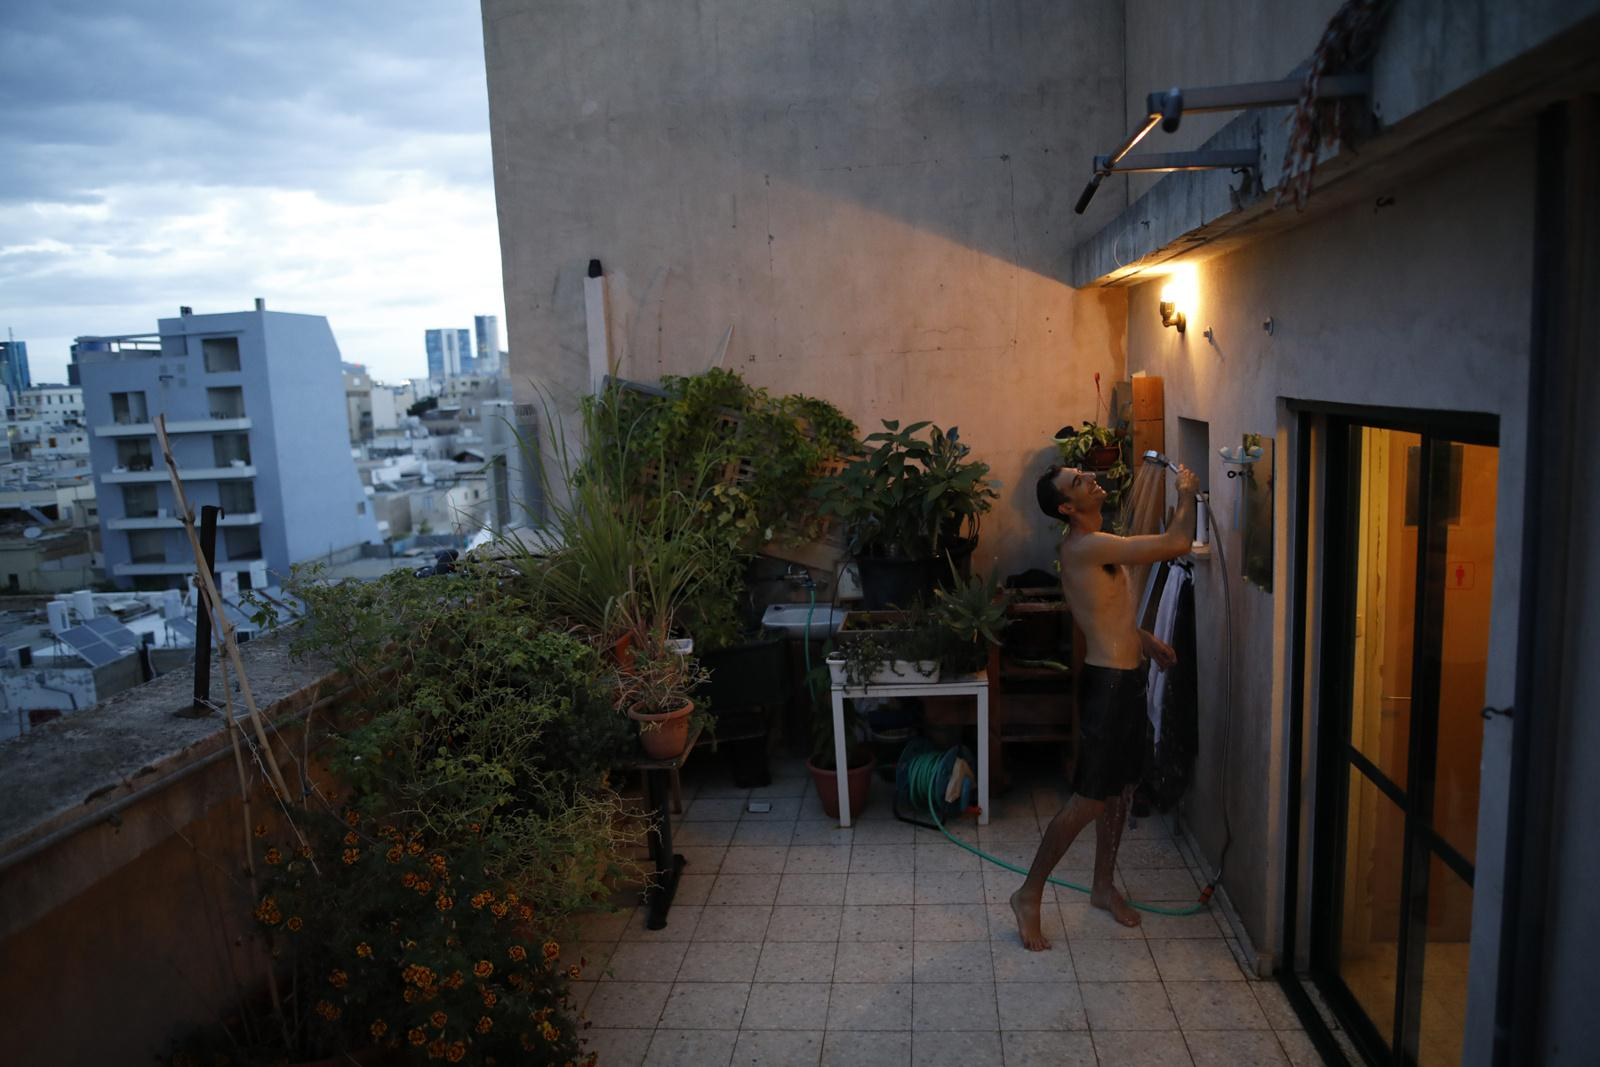 Emanuel Cohen, 36, takes a shower on his rooftop, which he also uses as a small garden to grow herbs and vegetables, November 24, 2017, in Florentine area, Tel Aviv, Israel. If the weather allows, Emanuel uses the outdoor shower instead of the indoor shower every day.